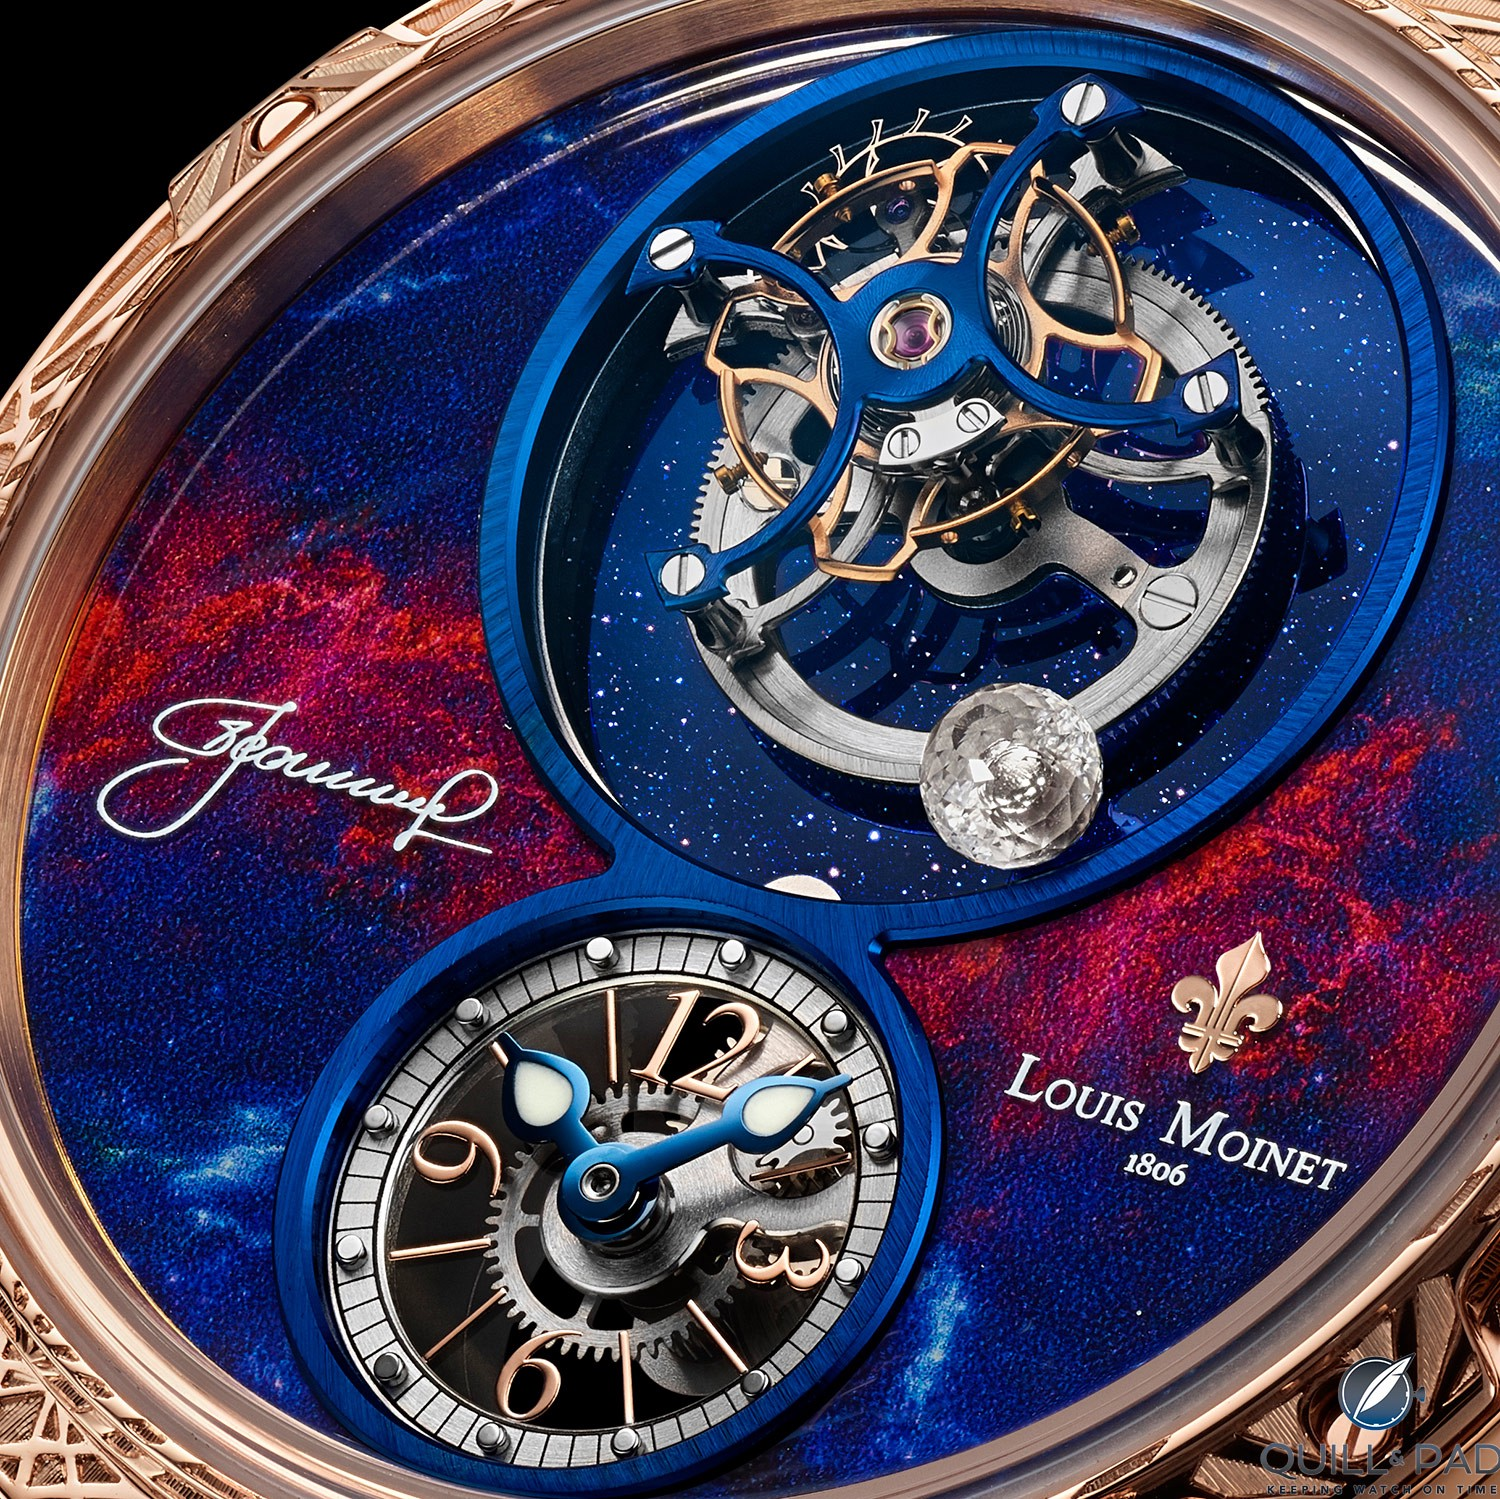 Simply sensational astronomically-themed dial of the Louis Moinet Spacewalker